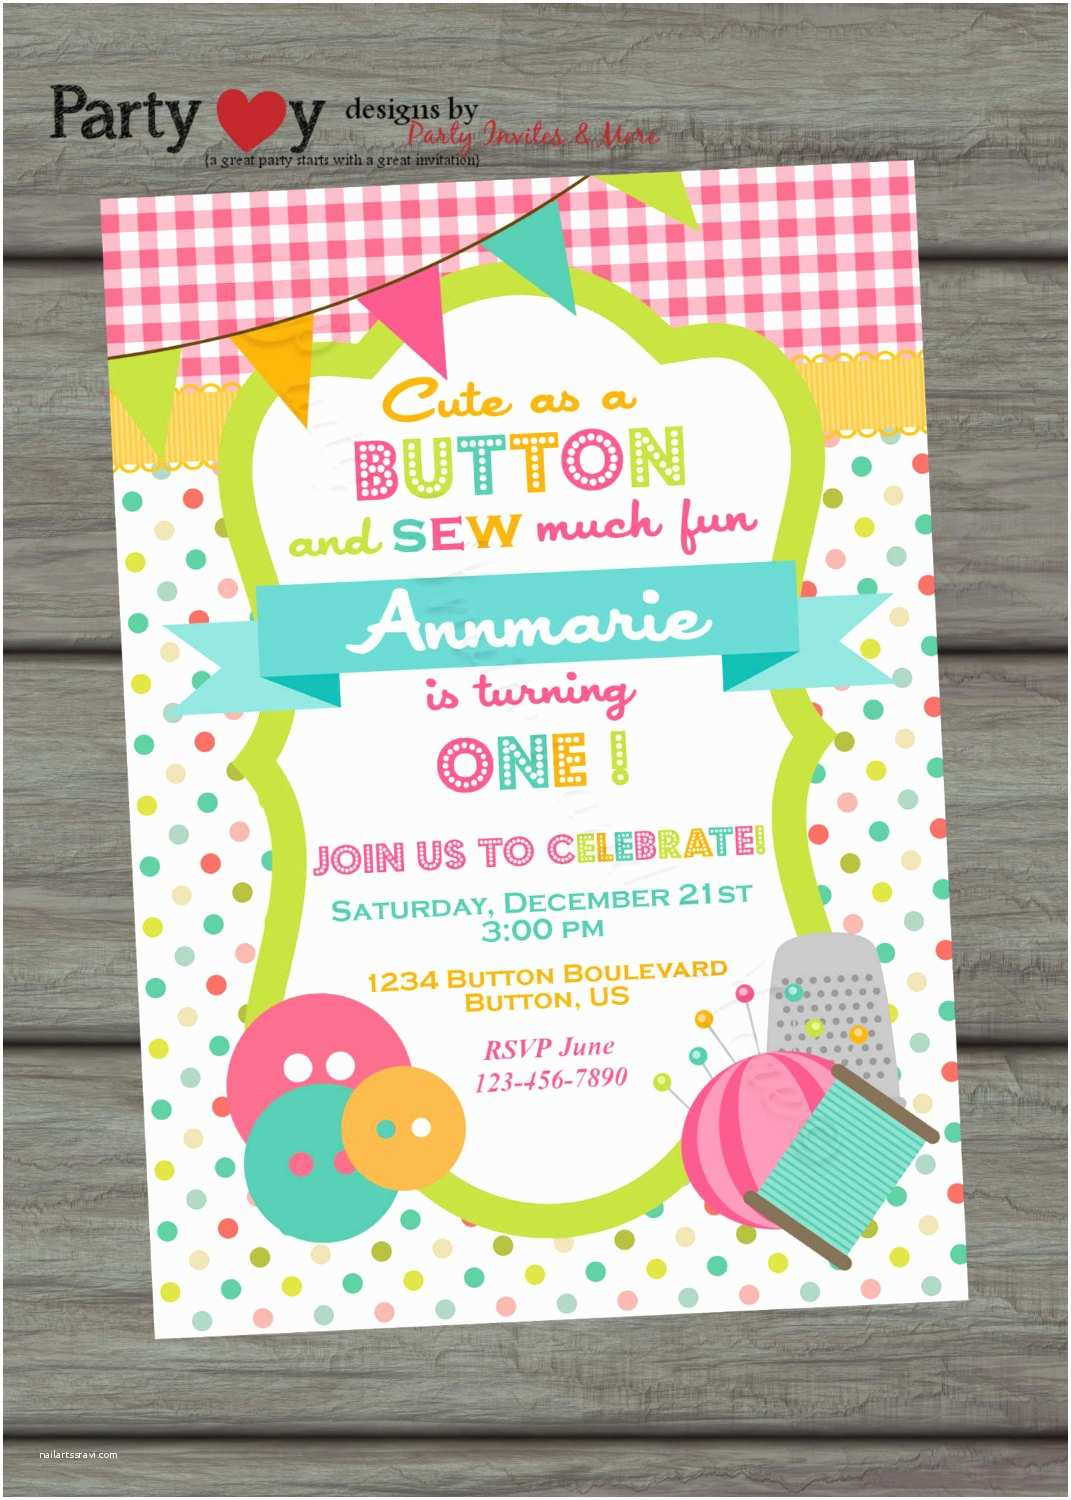 Cute Birthday Invitations Cute as A button Birthday Invitation Sew Cute Birthday